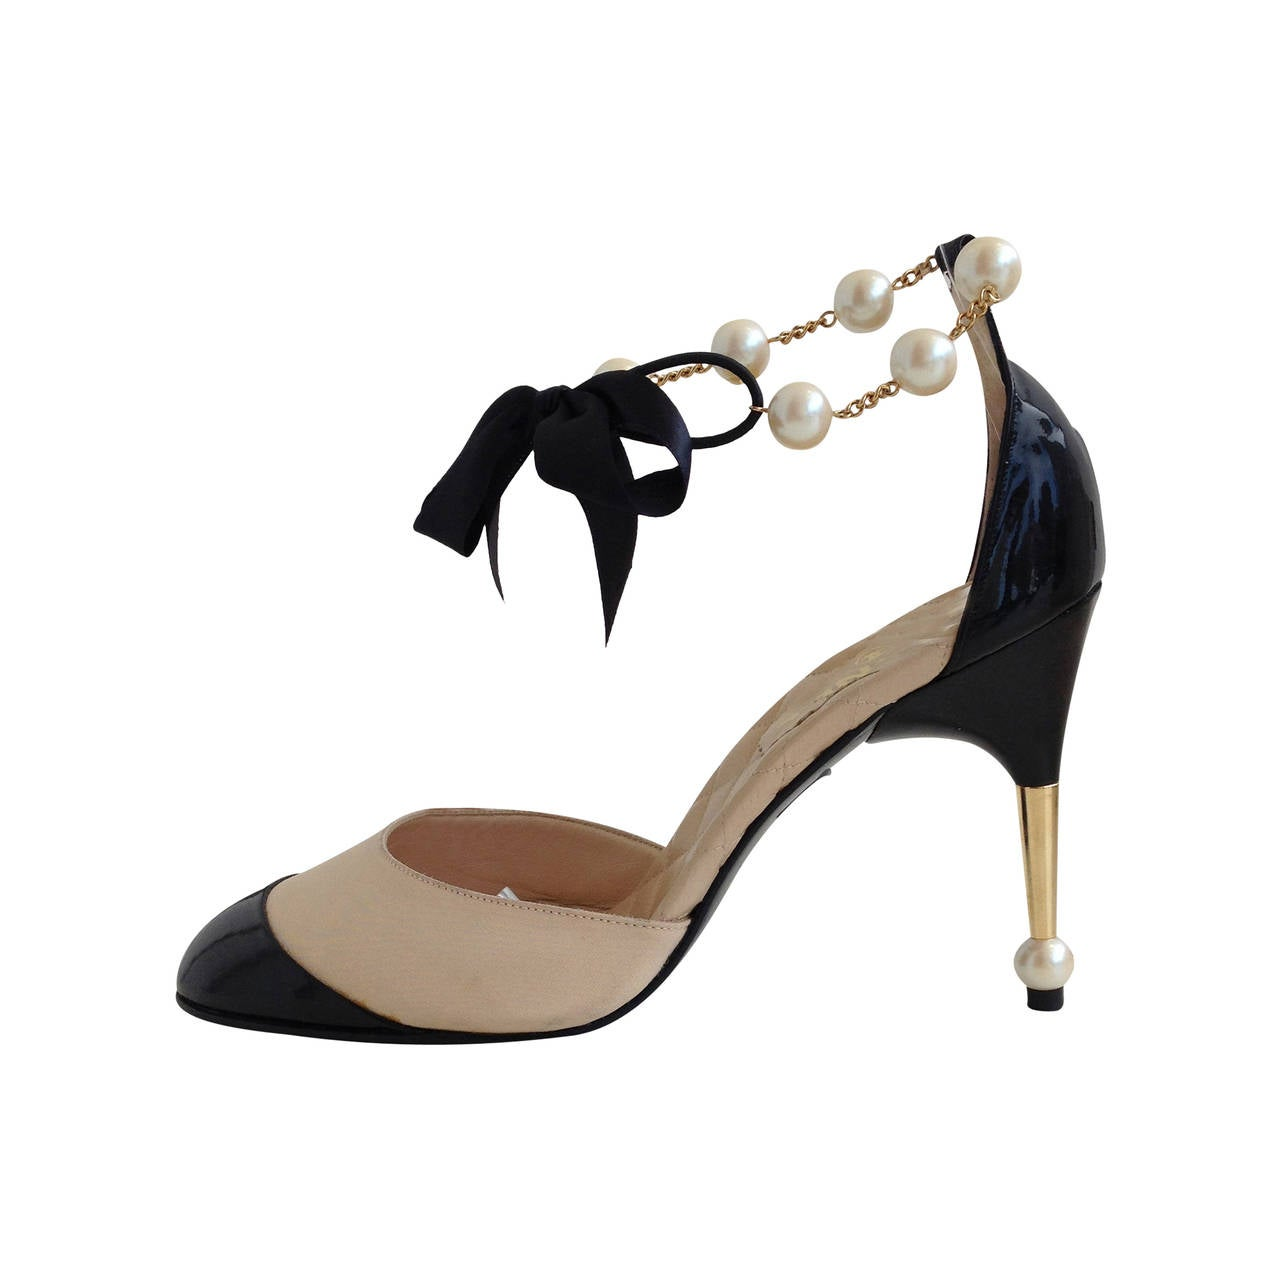 Chanel Cream Leather and Black Patent Heels with Pearl Ankle Strap ...